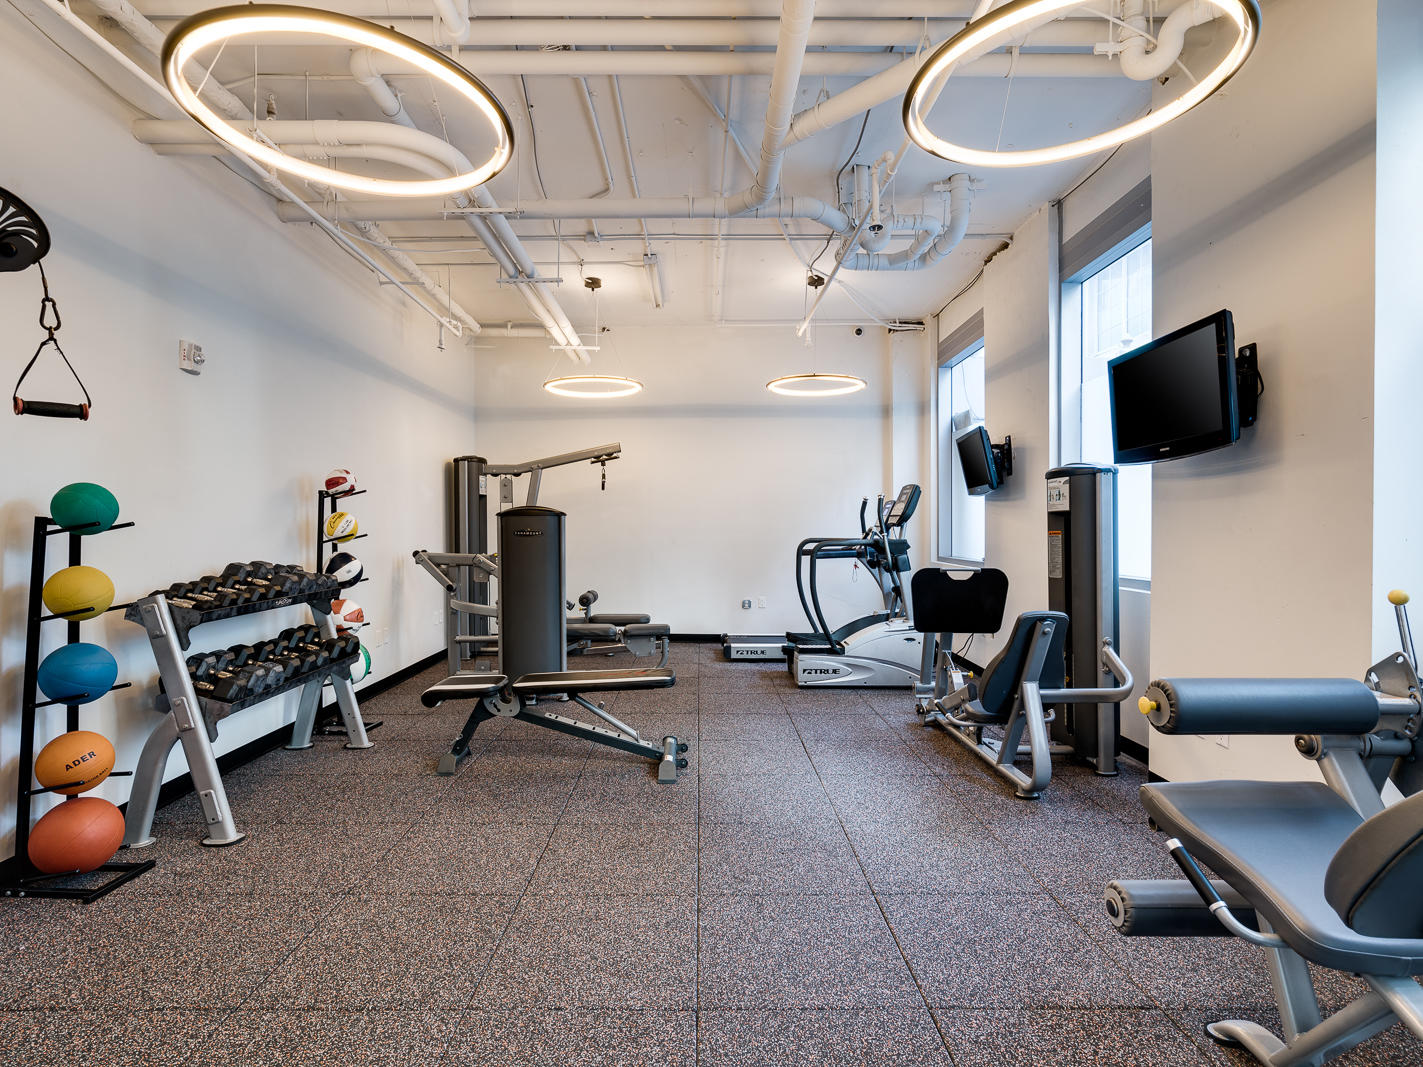 gym with fitness equipment and weights